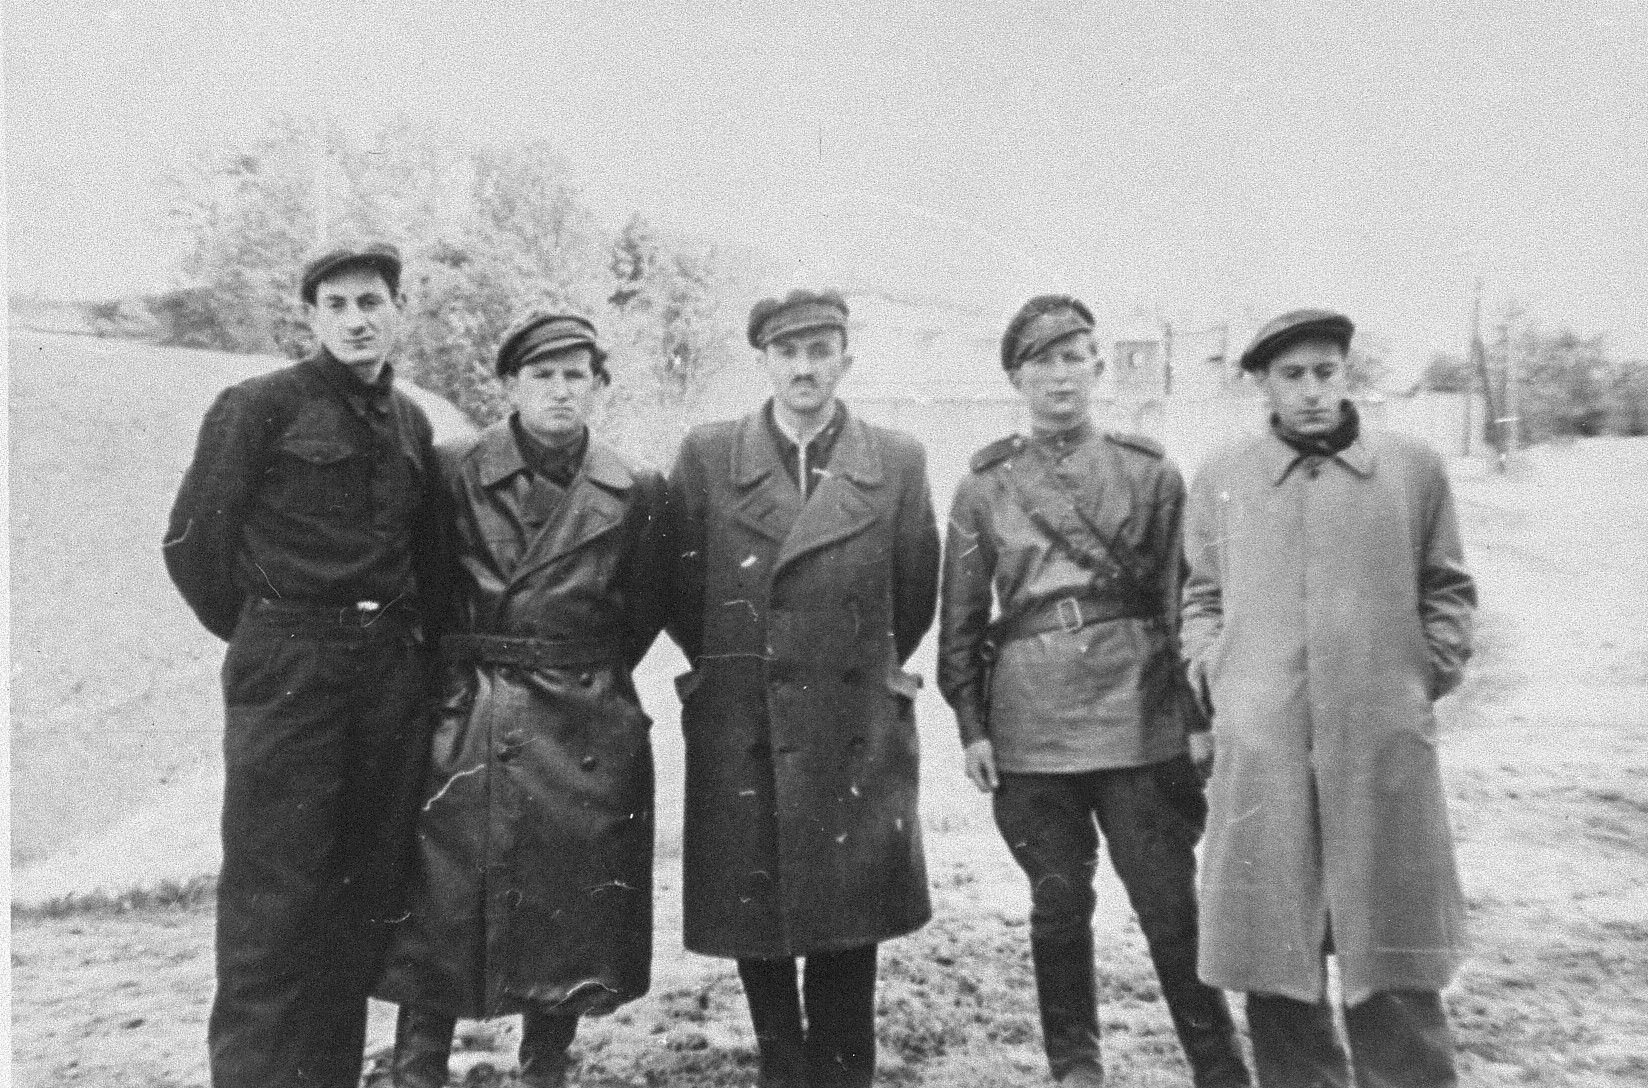 Group portrait of Jewish resistance fighters and participants in the Christmas 1943 escape from Fort IX in front of the fortress ten months after the liberation.  Pictured from left to right are: Pinia Krakinovski, Berl Gempel, Meir Yellin, Israel Gitlin and Wladyslaw Blum(?).